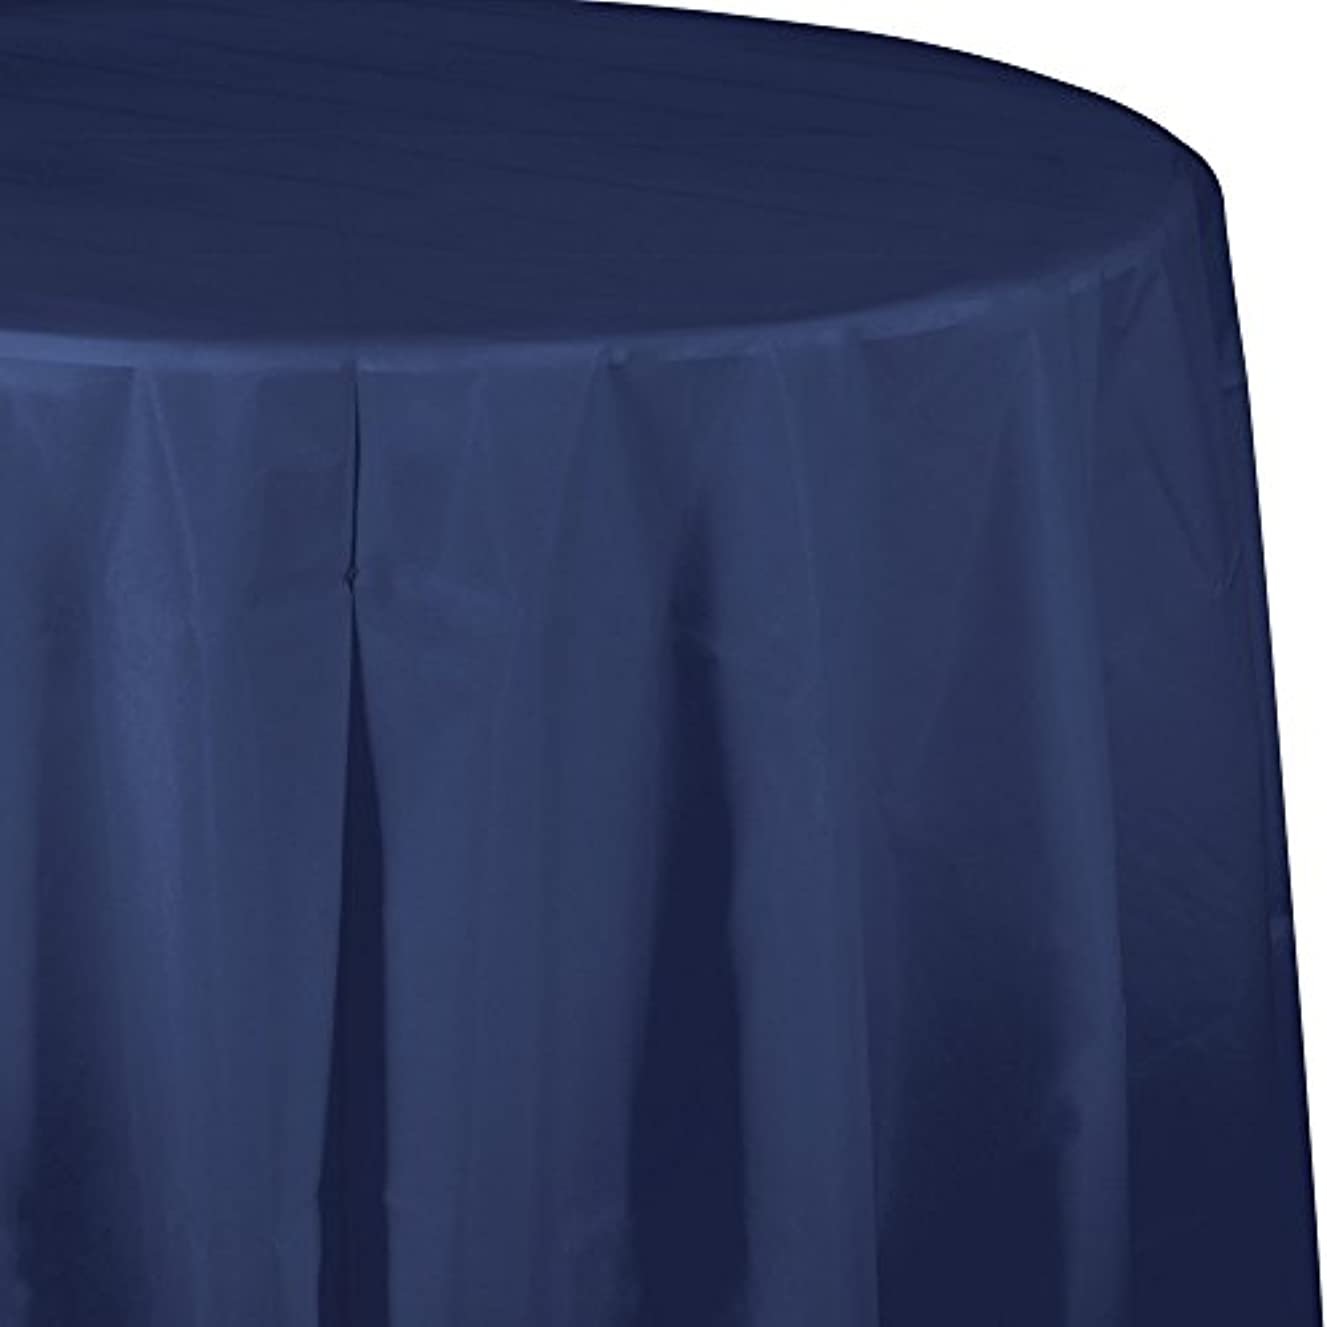 Creative Converting Tissue Poly Table Covers Octy Round Paper Tablecloth, 3 Ply 82 Inch x 82 Inch For 60 Inch Round Tables - 3 Pack - Various Colors and Quantities  (Navy, 2 - 3 Packs)